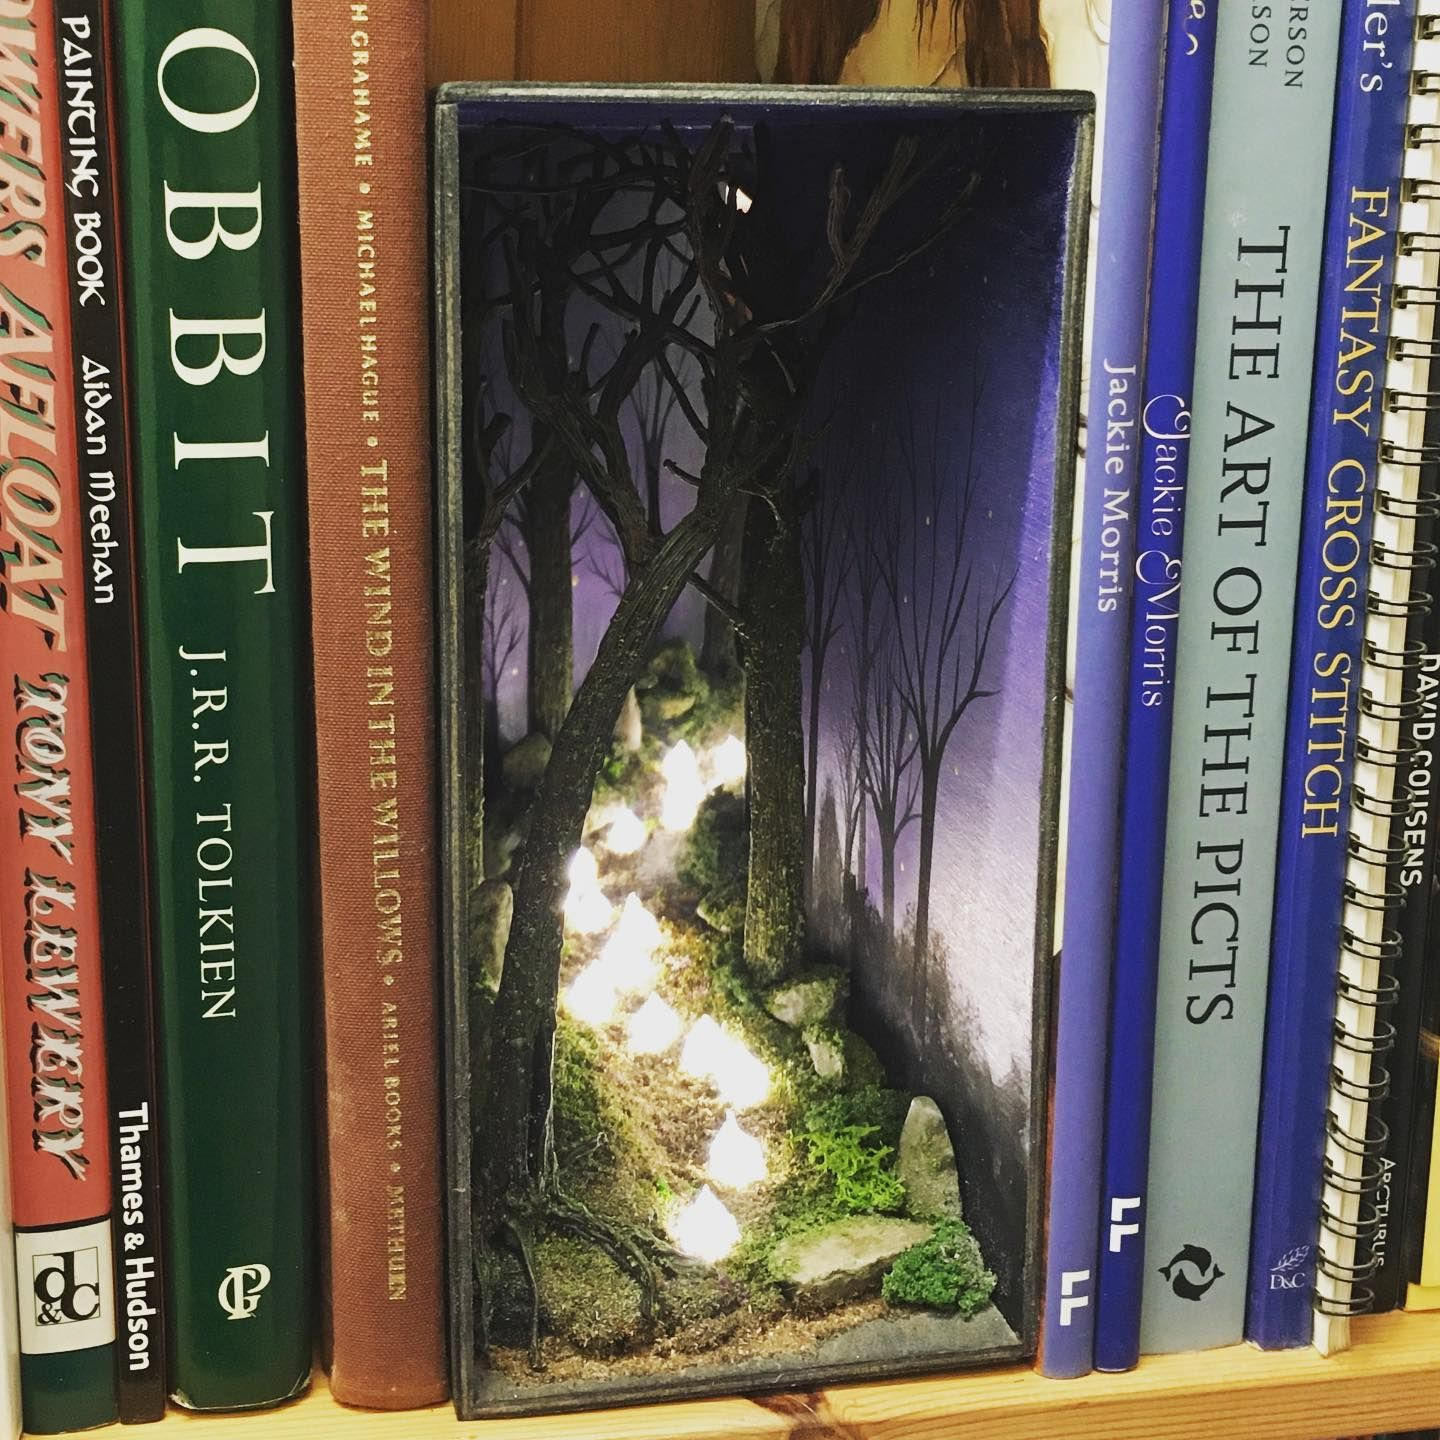 A Book Nook Inspired By The Willo The Wisp In Brave Have You Ever Seen One In Real Life I Ve Always Been Fascinat Book Nooks Bookshelf Art Miniature Books